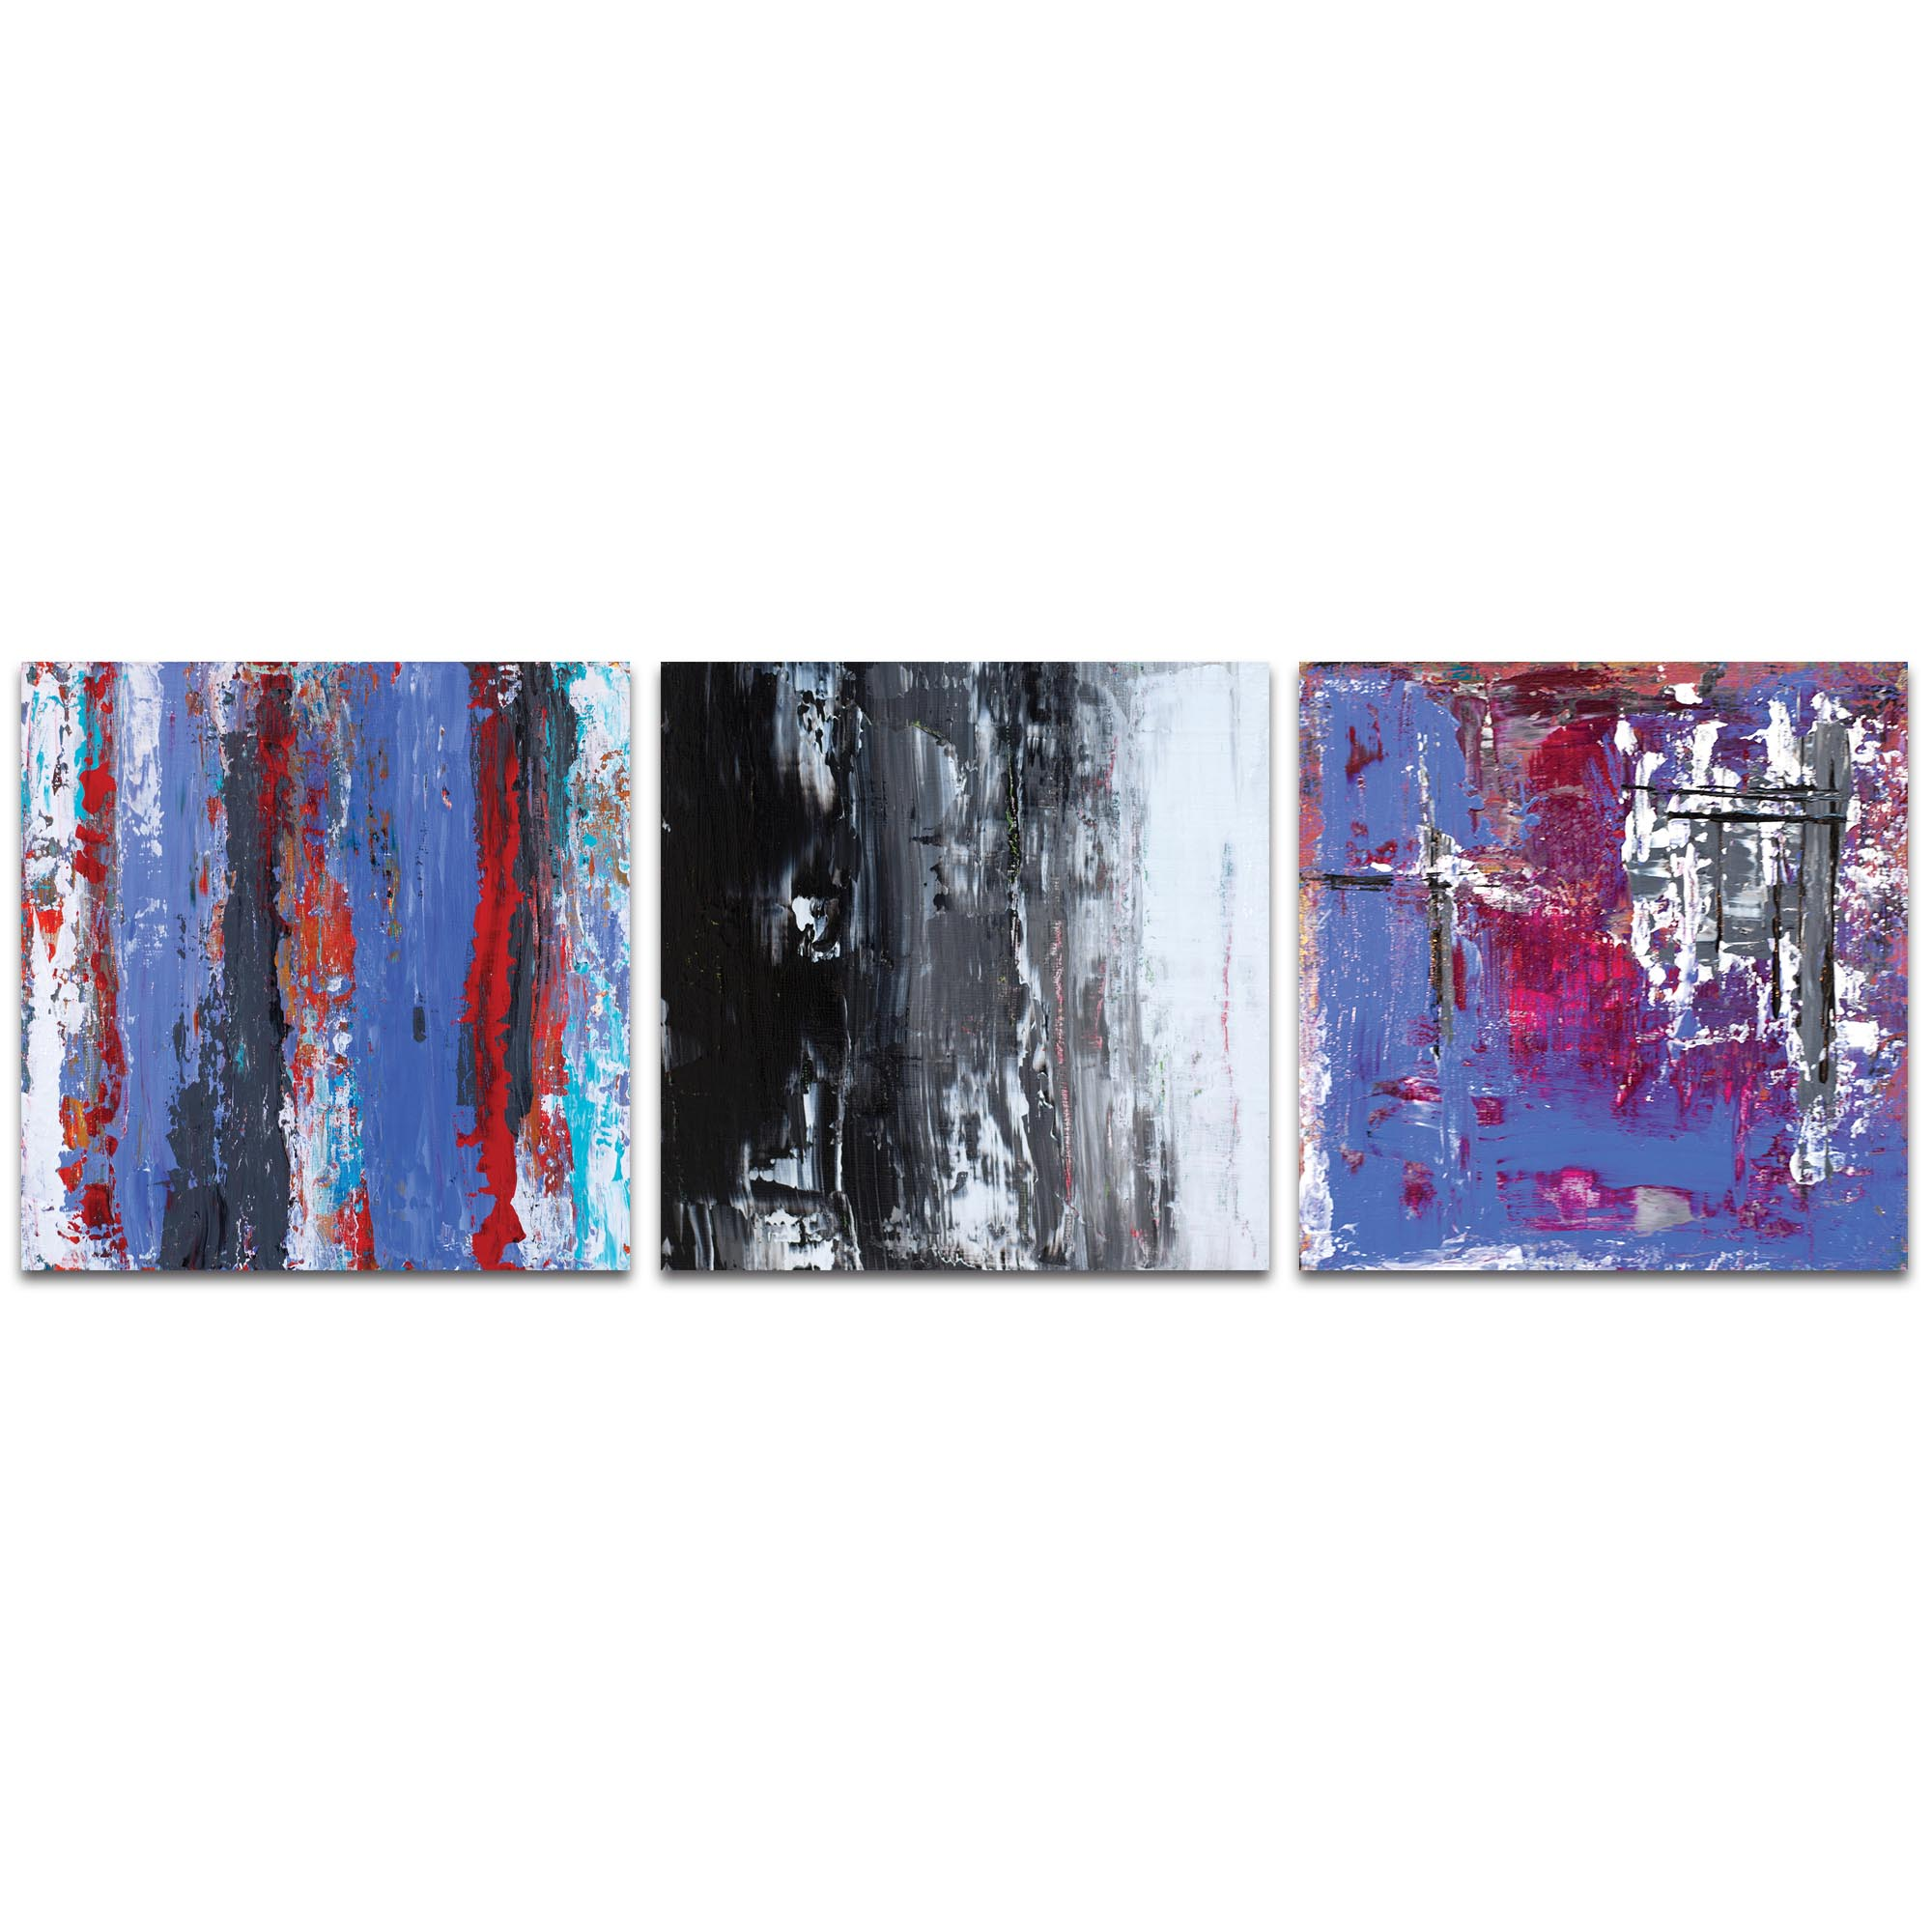 Abstract Wall Art 'Urban Triptych 4' - Urban Decor on Metal or Plexiglass